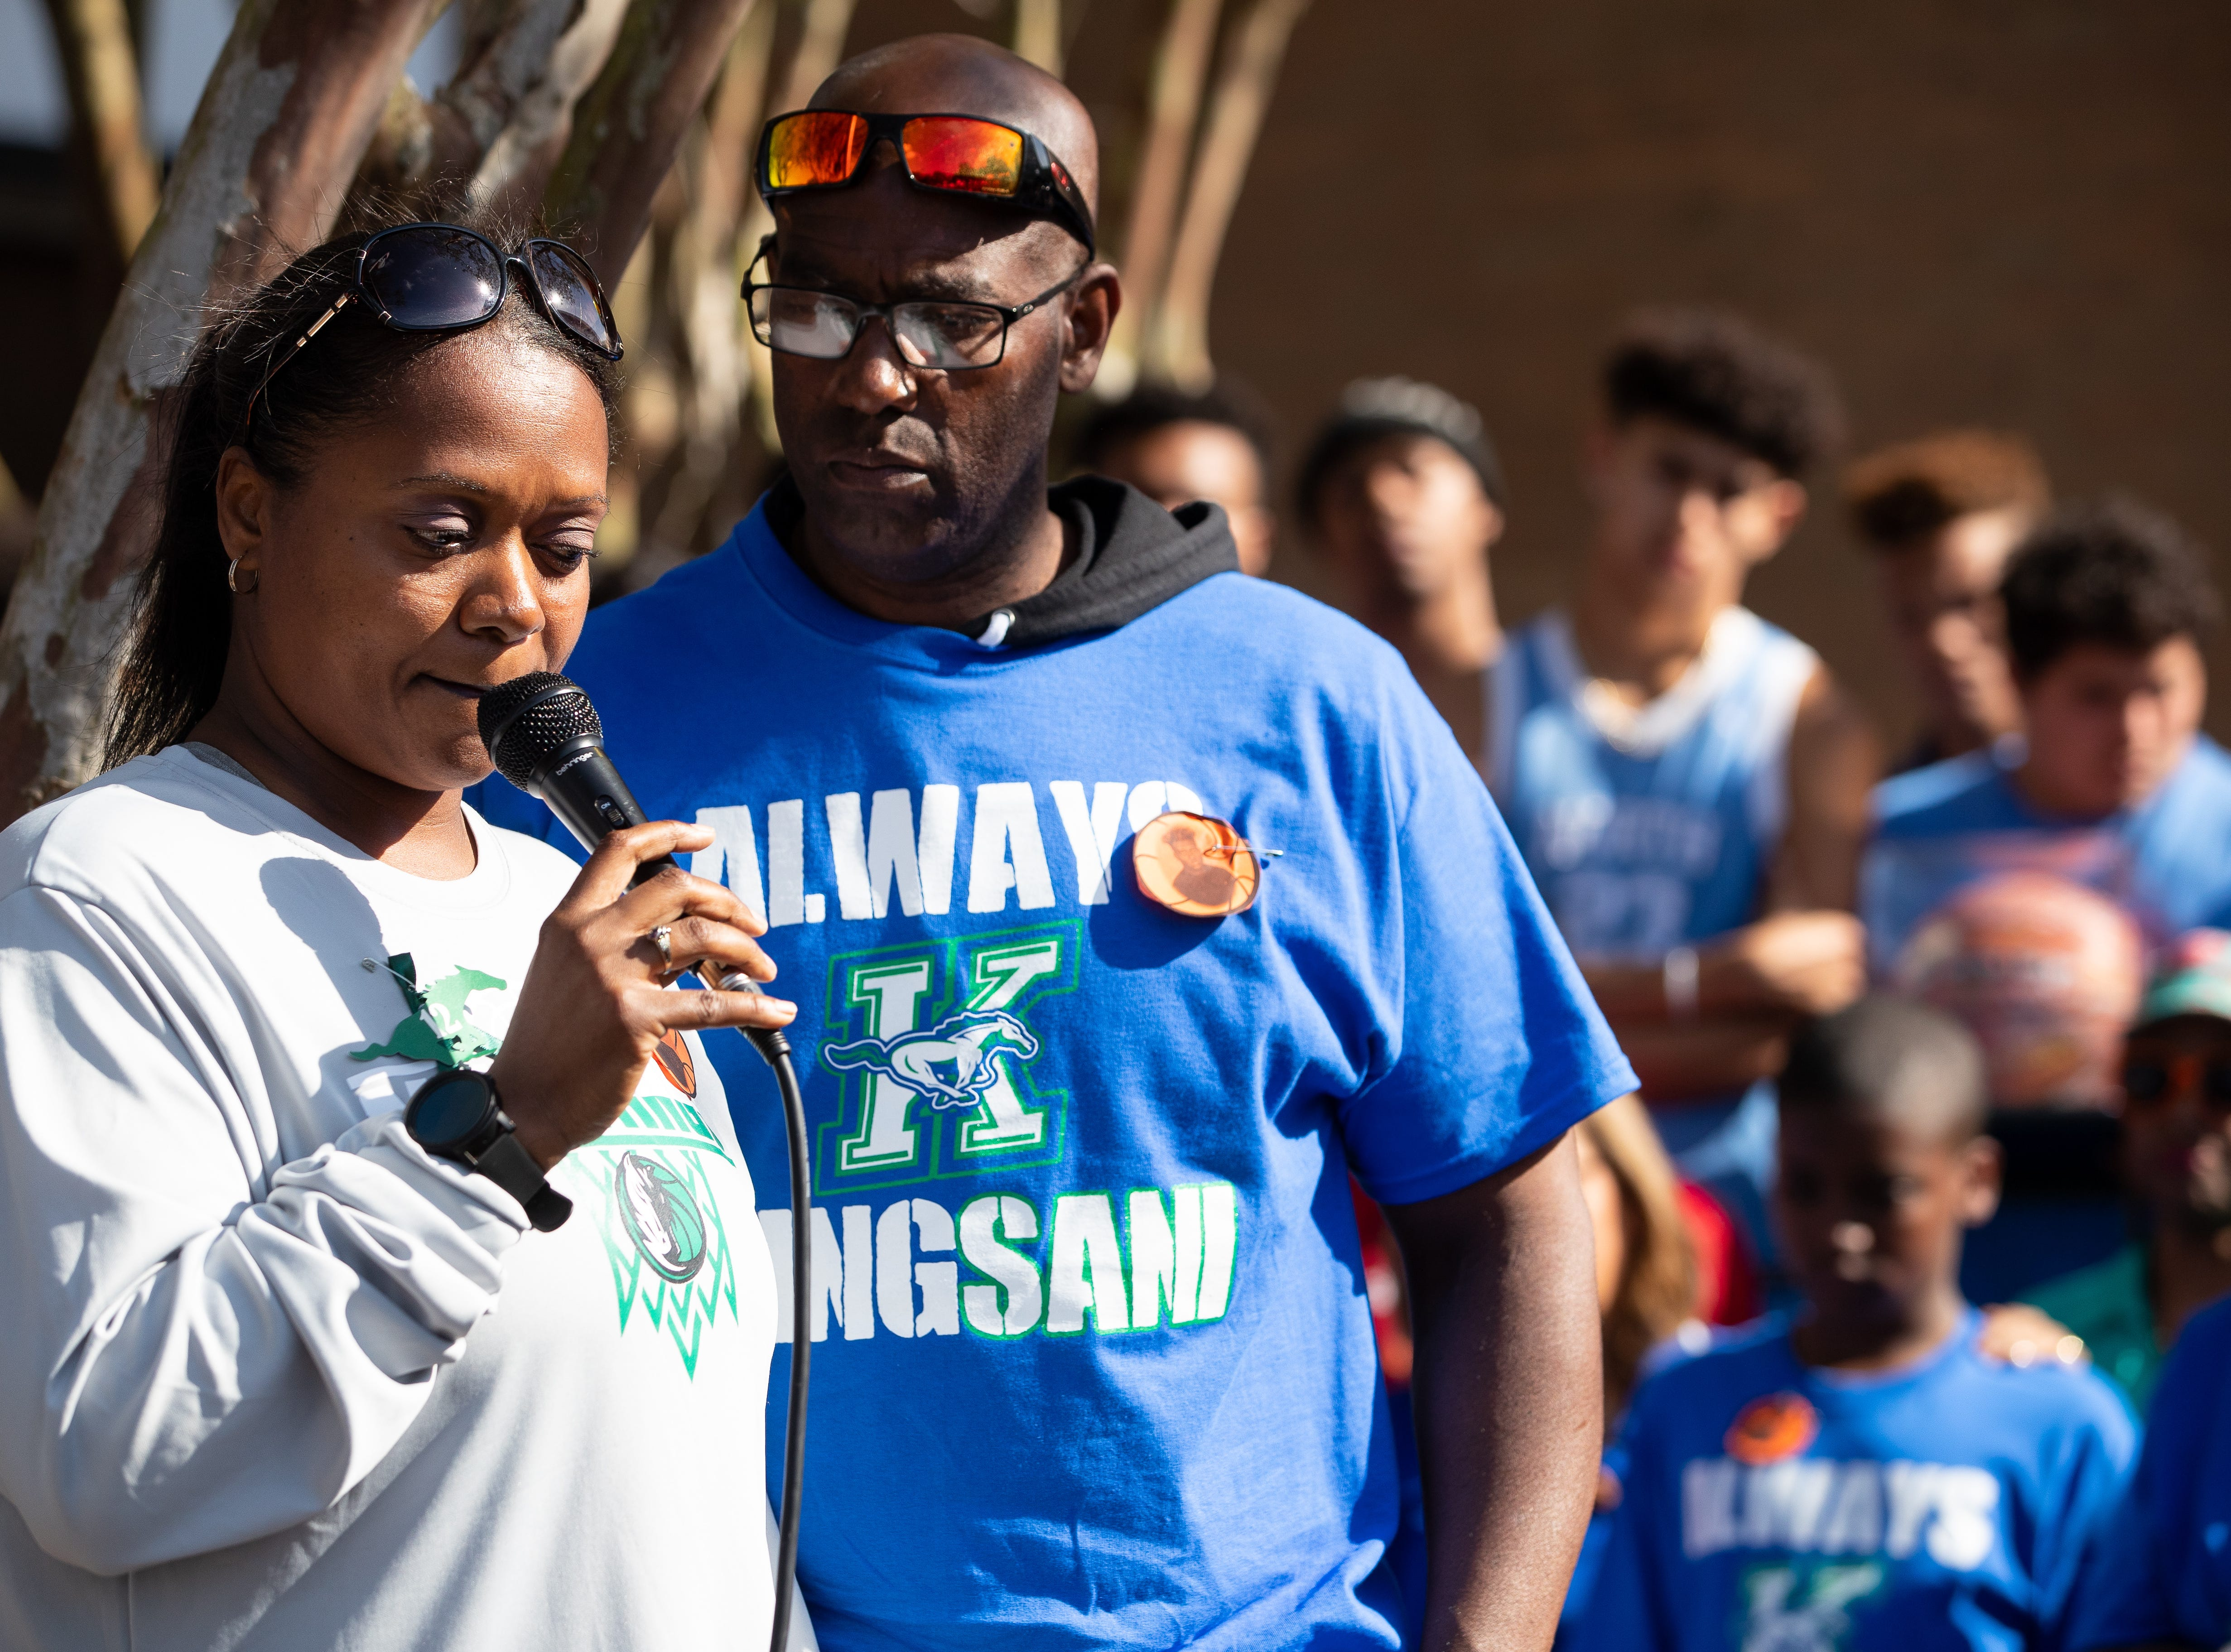 Kiwana Denson mother of King High School senior Je'Sani Smith speaks during a vigil for him on Monday, April 15, 2019. Je'Sani Smith's body was recovered Sunday afternoon near Bob Hall Pier after drowning on Whitecap Beach last week.